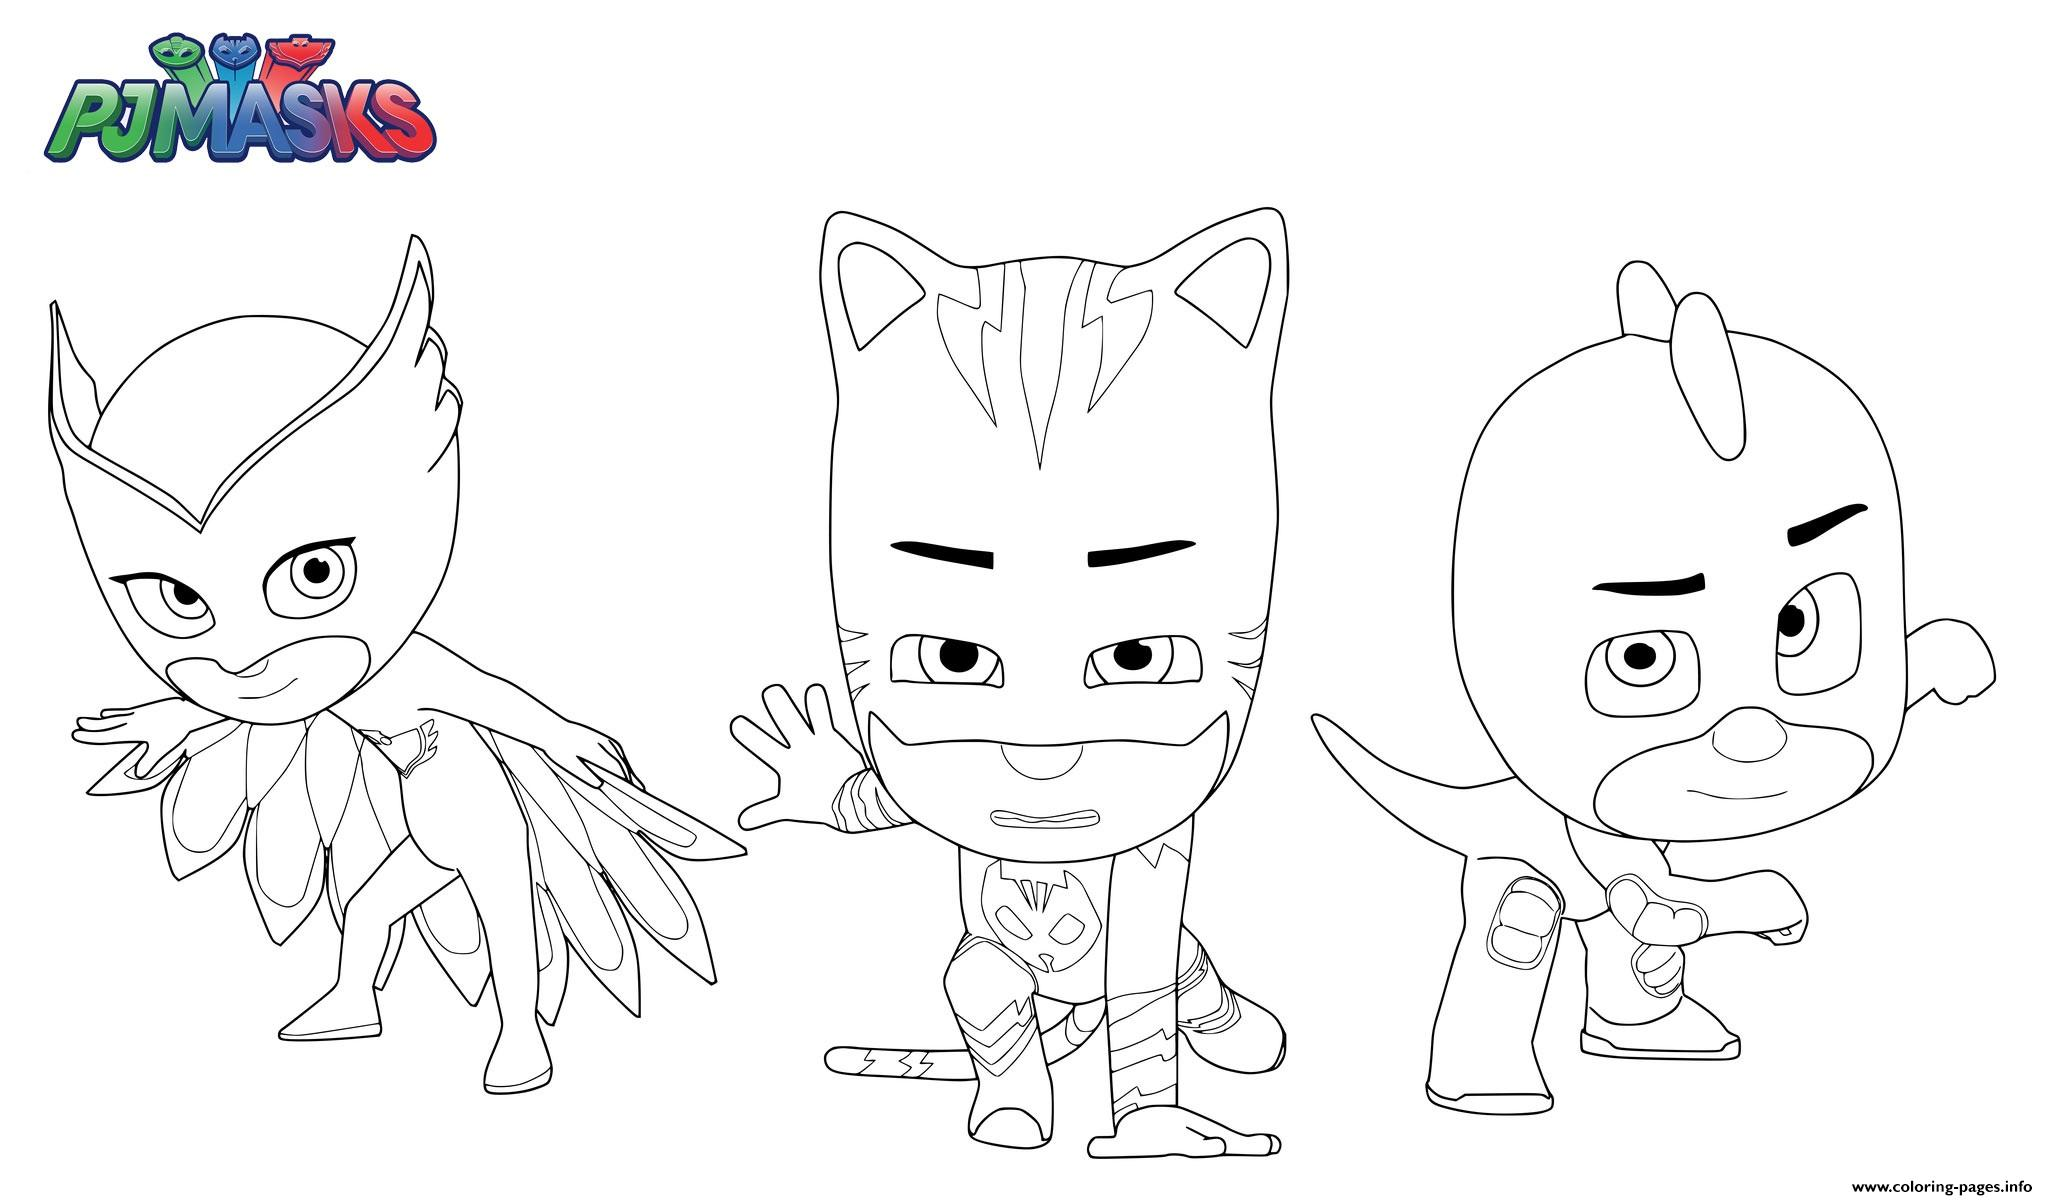 pj masks superheroes coloring pages - Pj Masks Coloring Pages